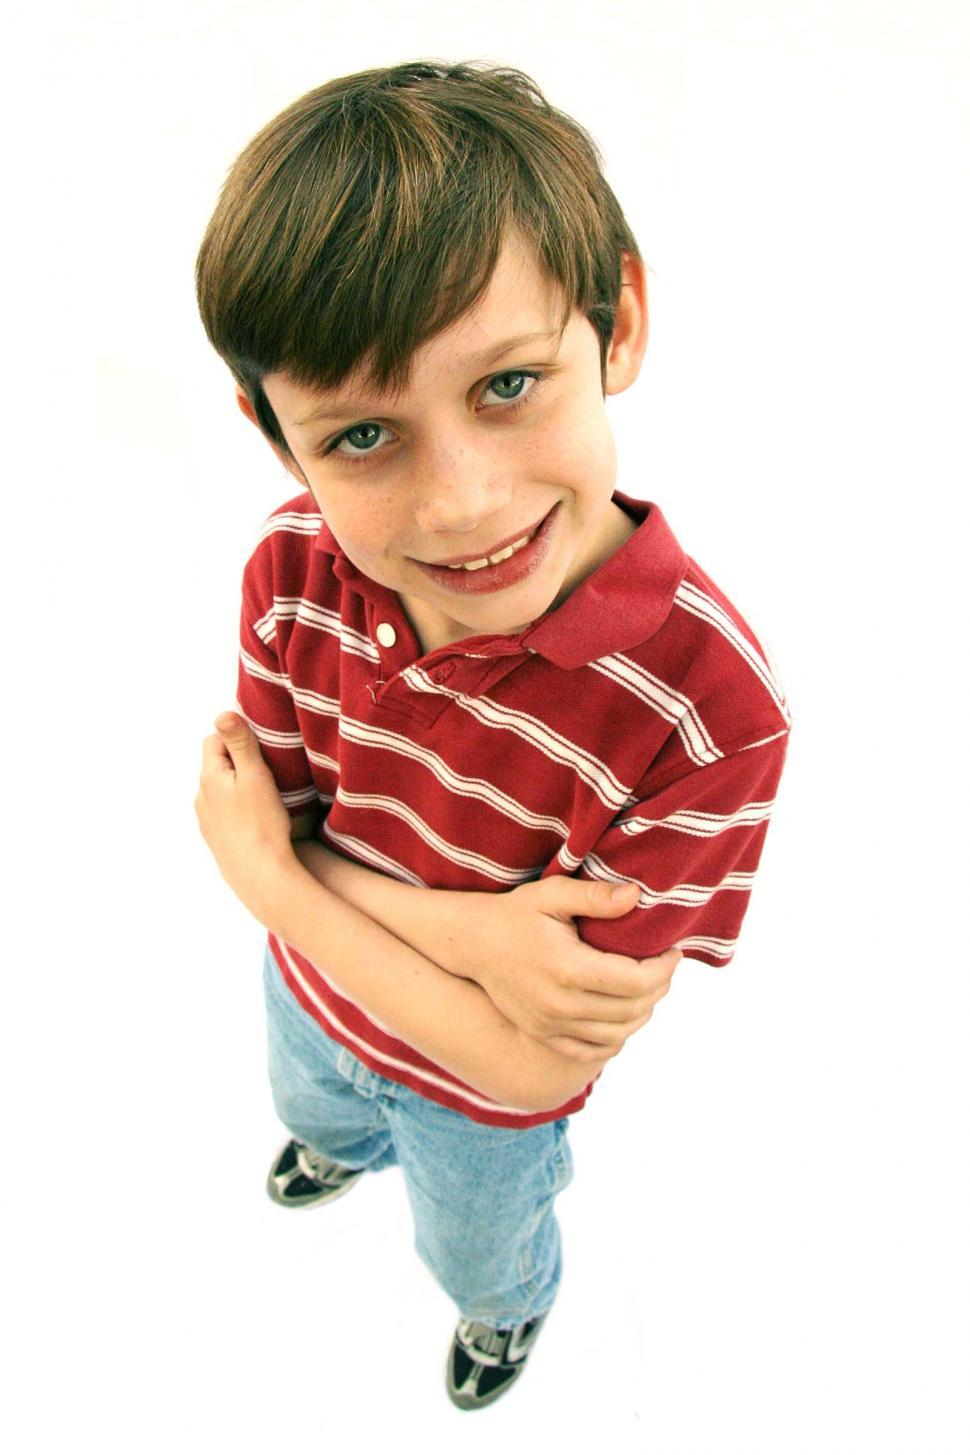 Download Free Stock HD Photo of Boy looking pleased with arms crossed Online